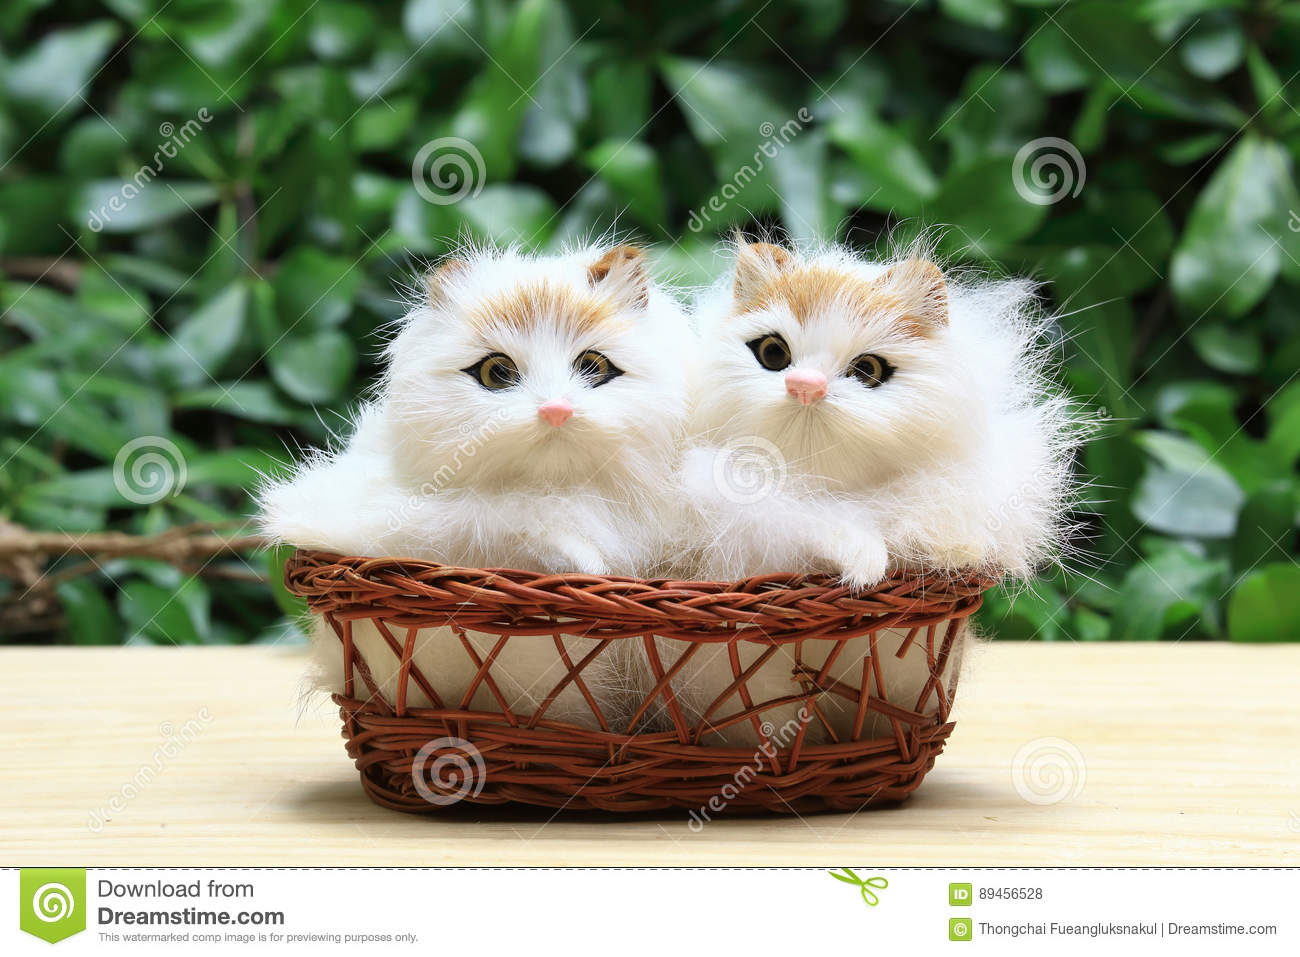 The two cat or kittens in the basket.